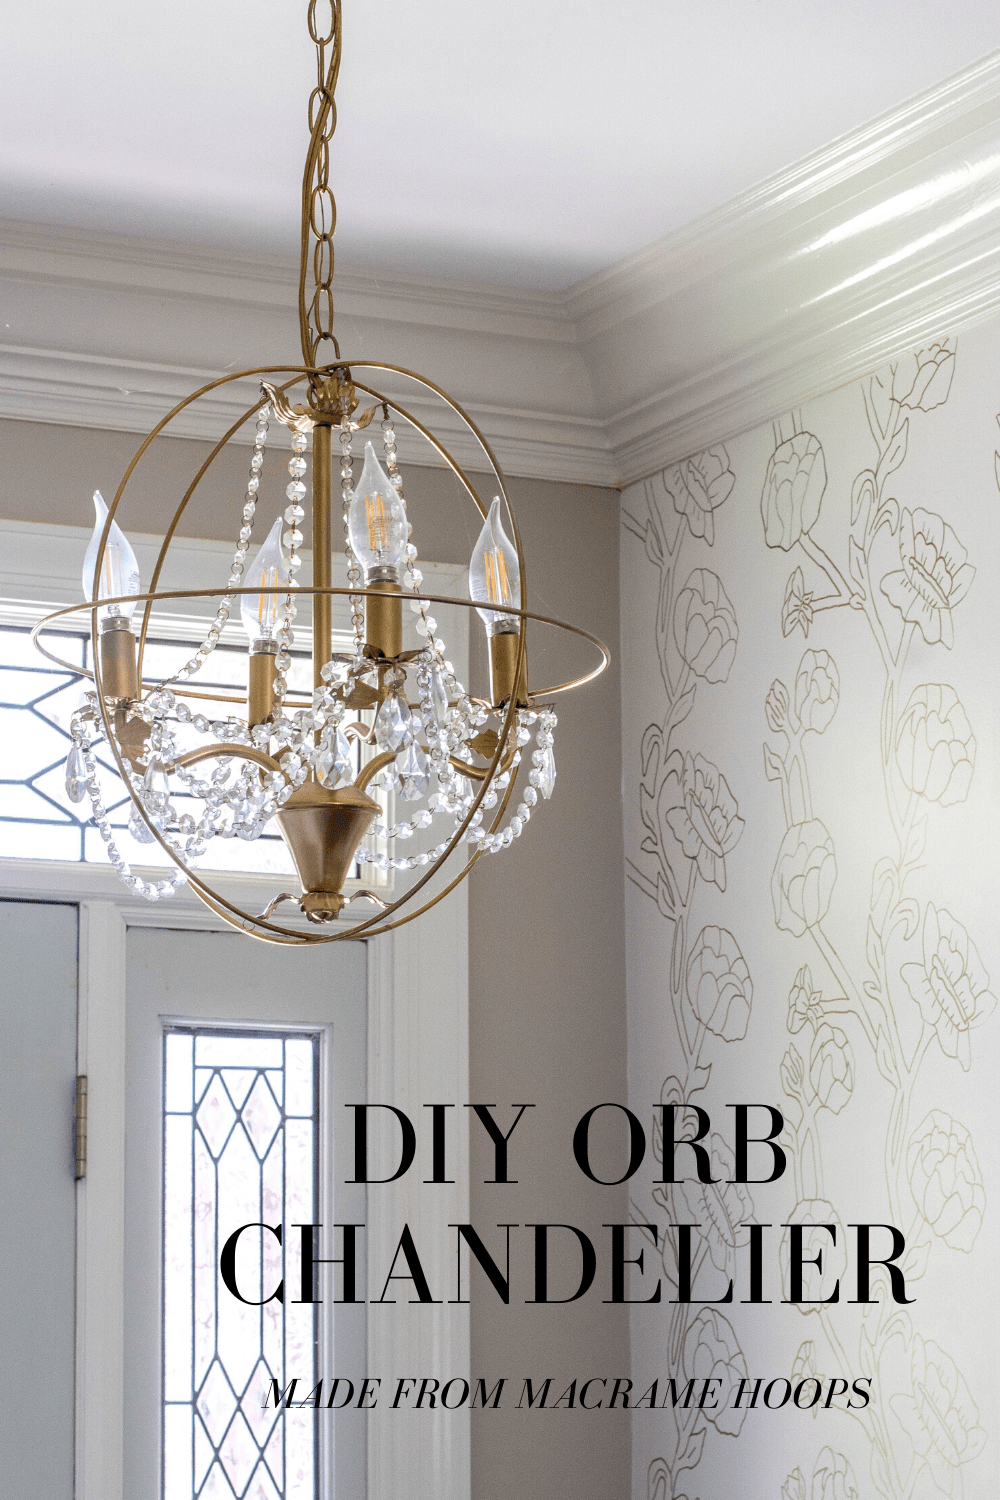 You can make a DIY Orb Chandelier with macrame hoops and an old chandlier.